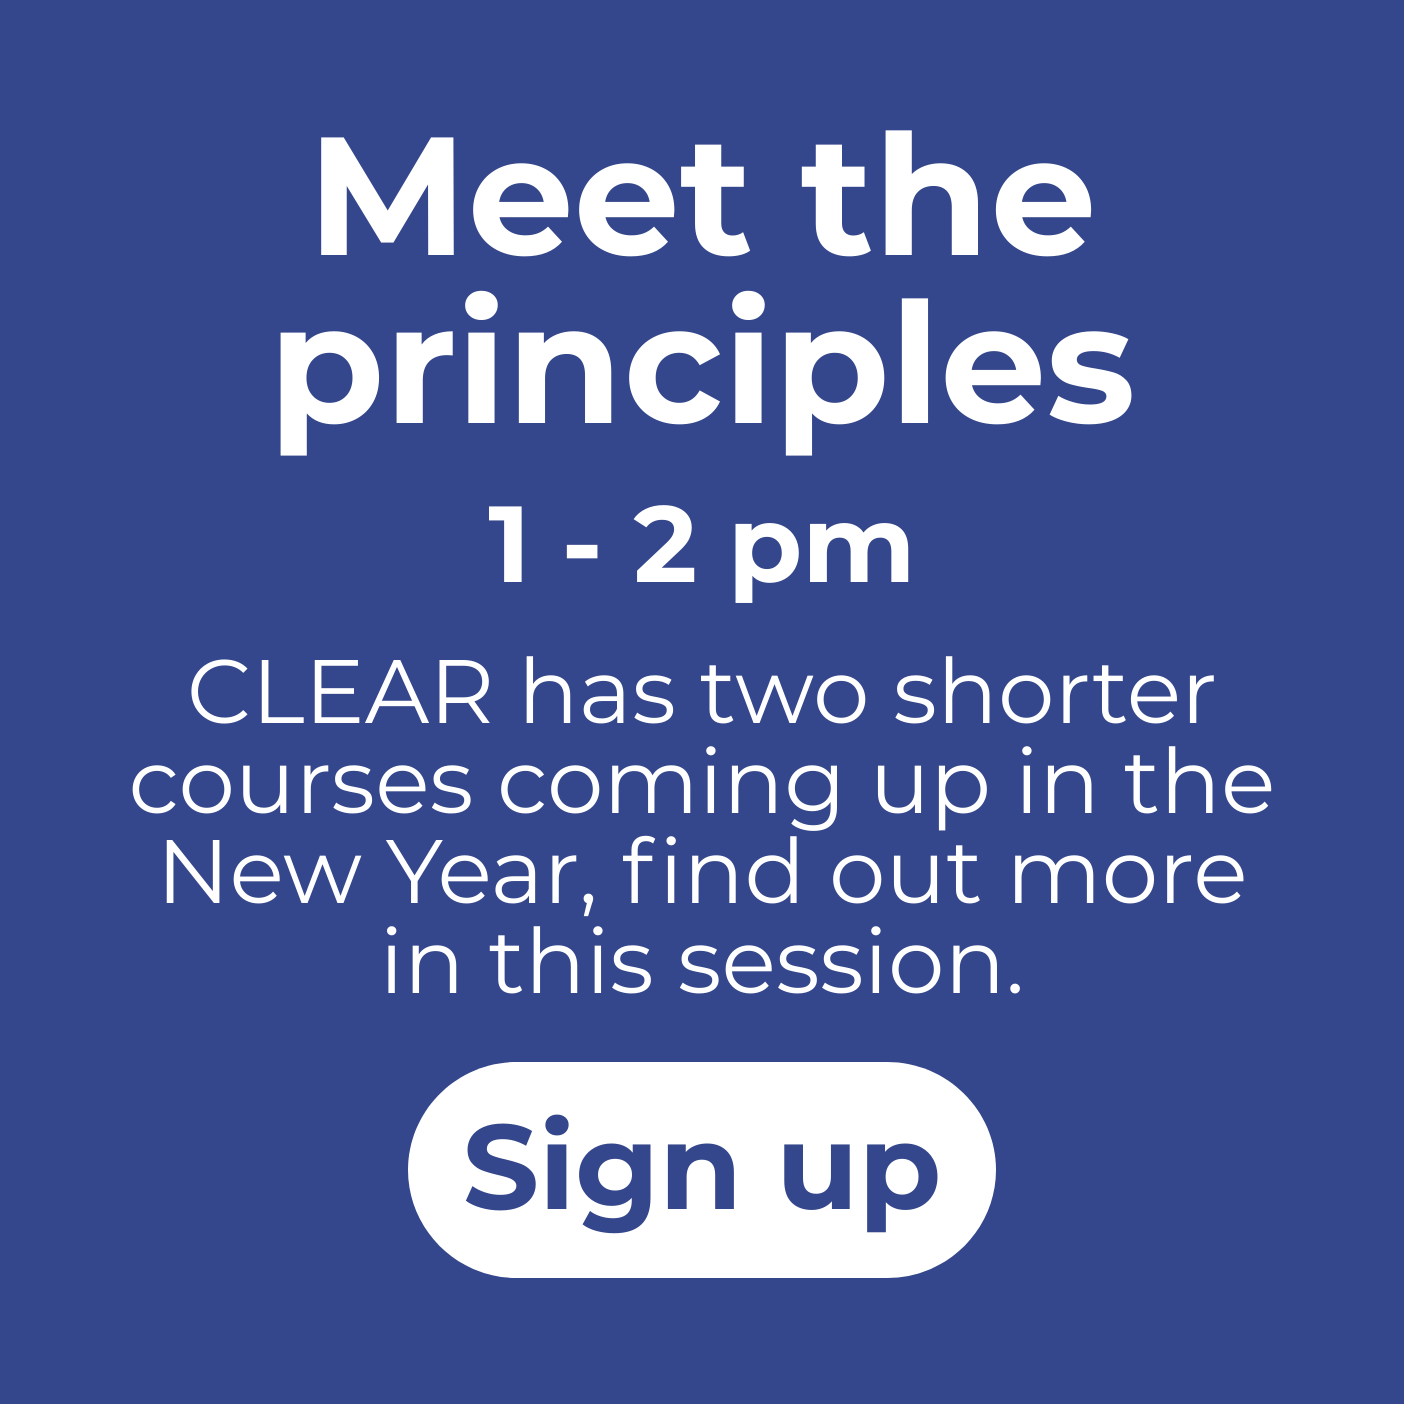 Meet the principles session